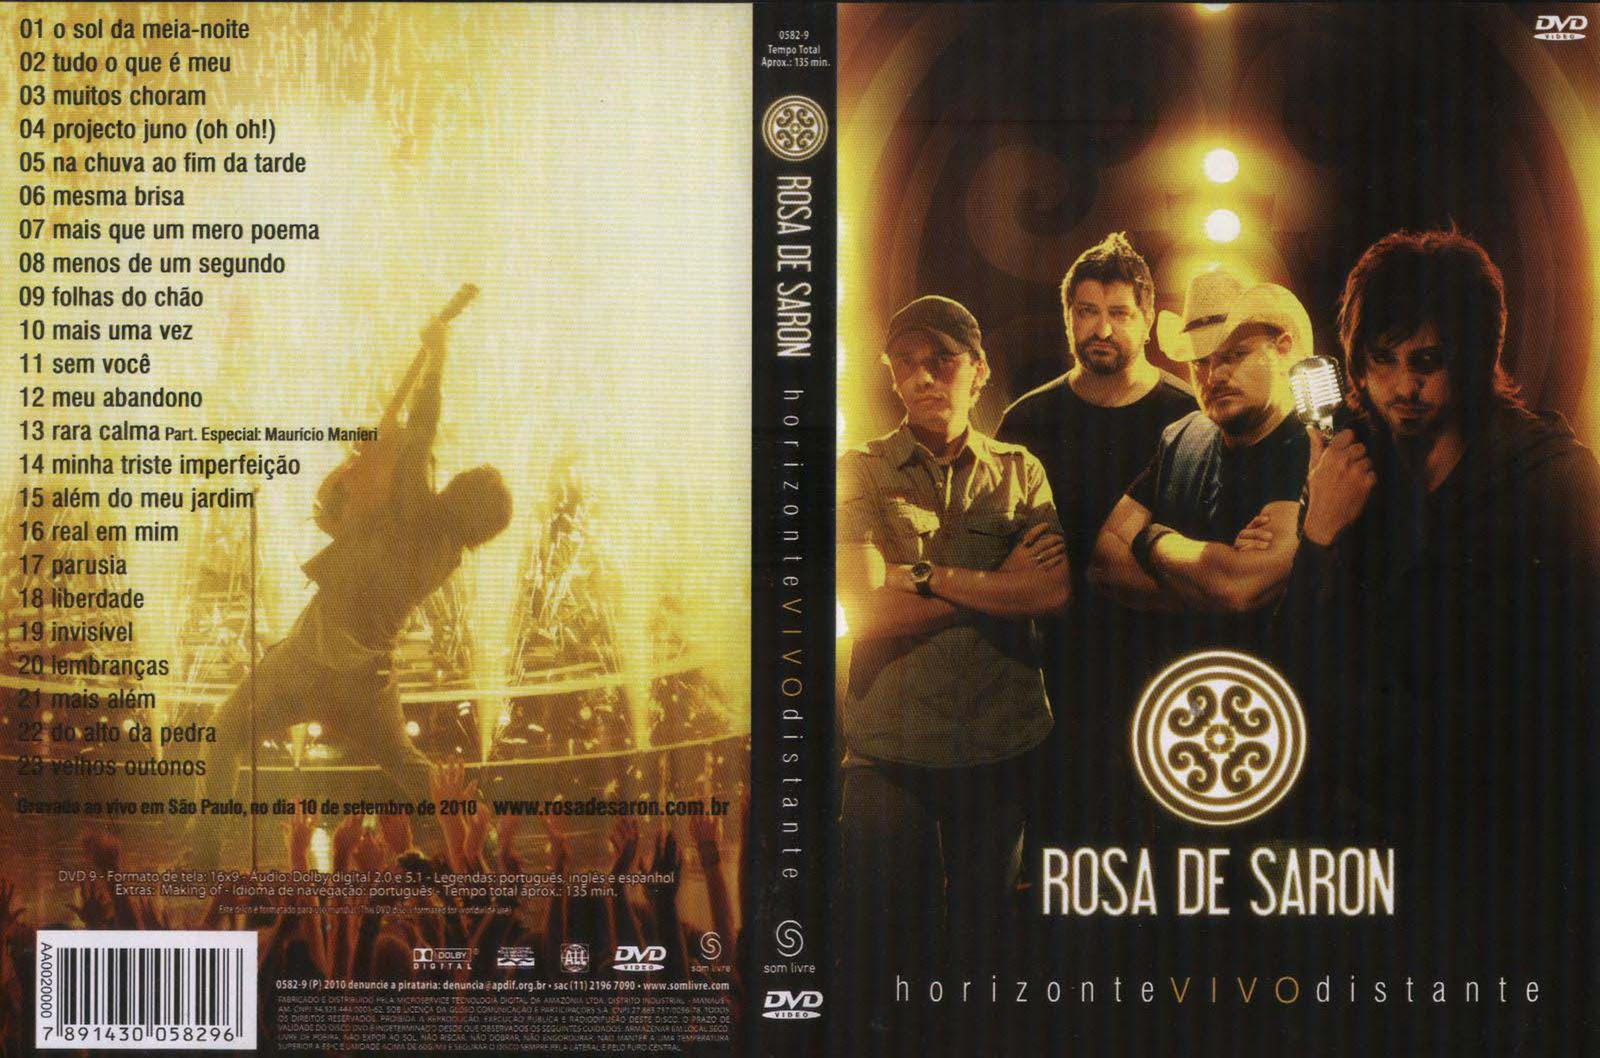 dvd do rosa de saron horizonte vivo distante gratis